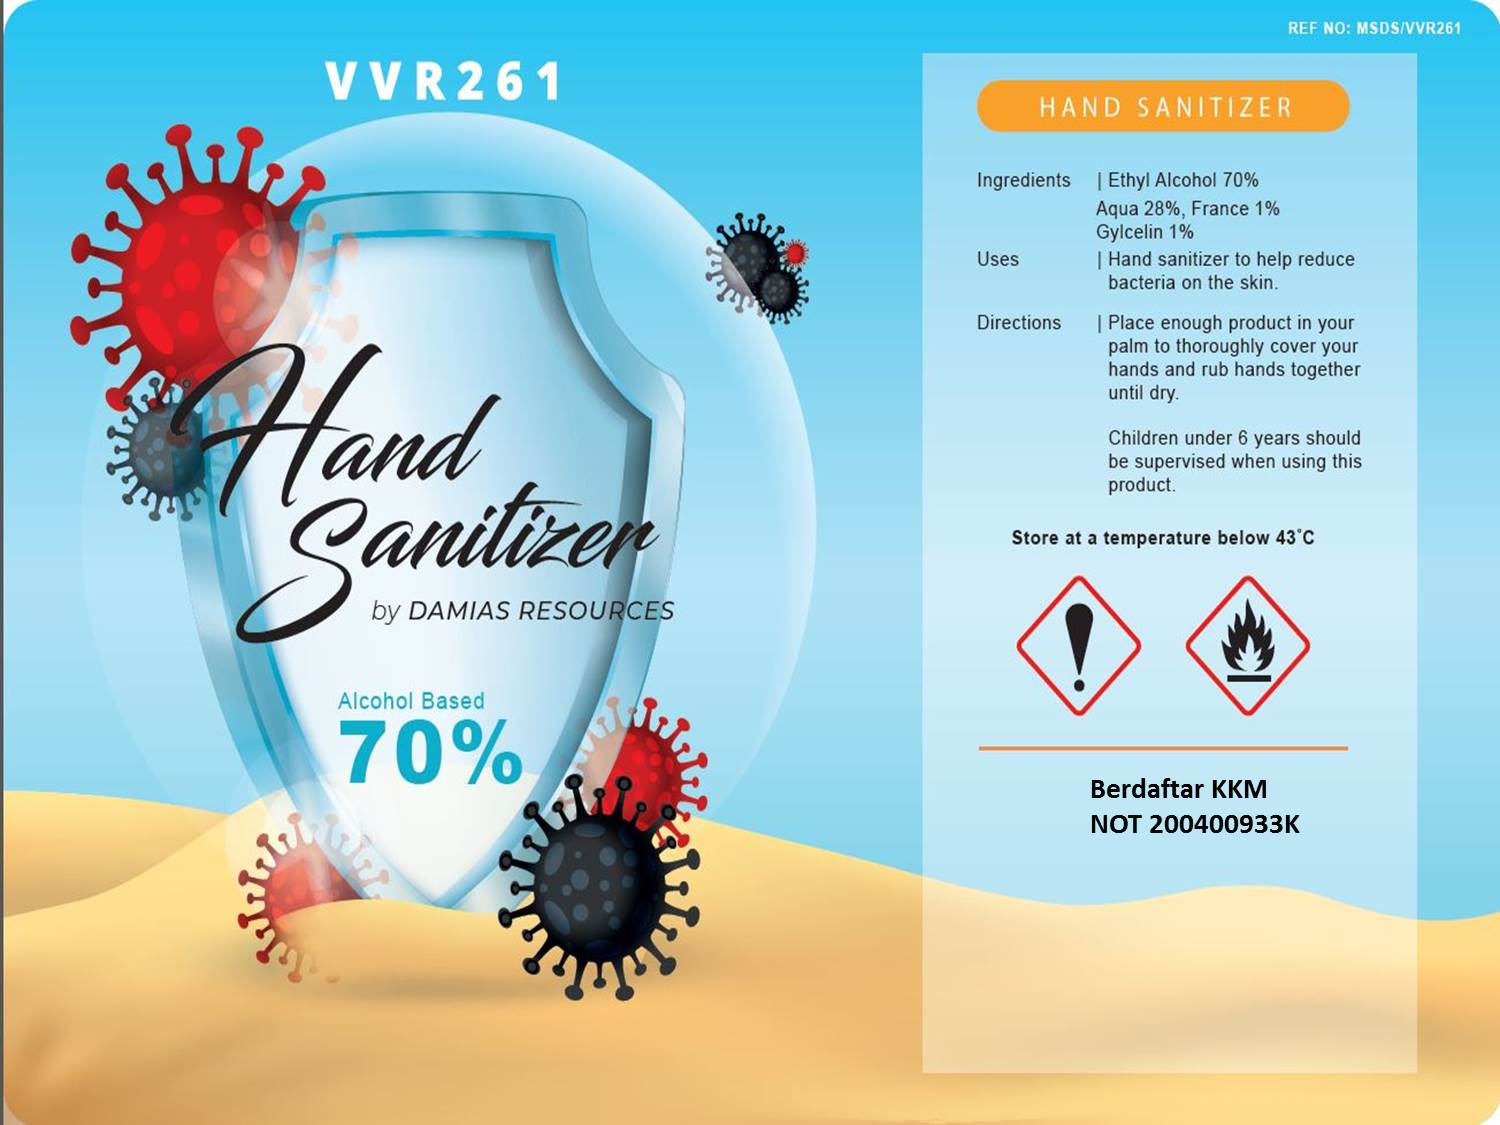 HAND SANITIZER VVR261 DAMIAS CLEAN WASH GEL 150ml (REG KKM)